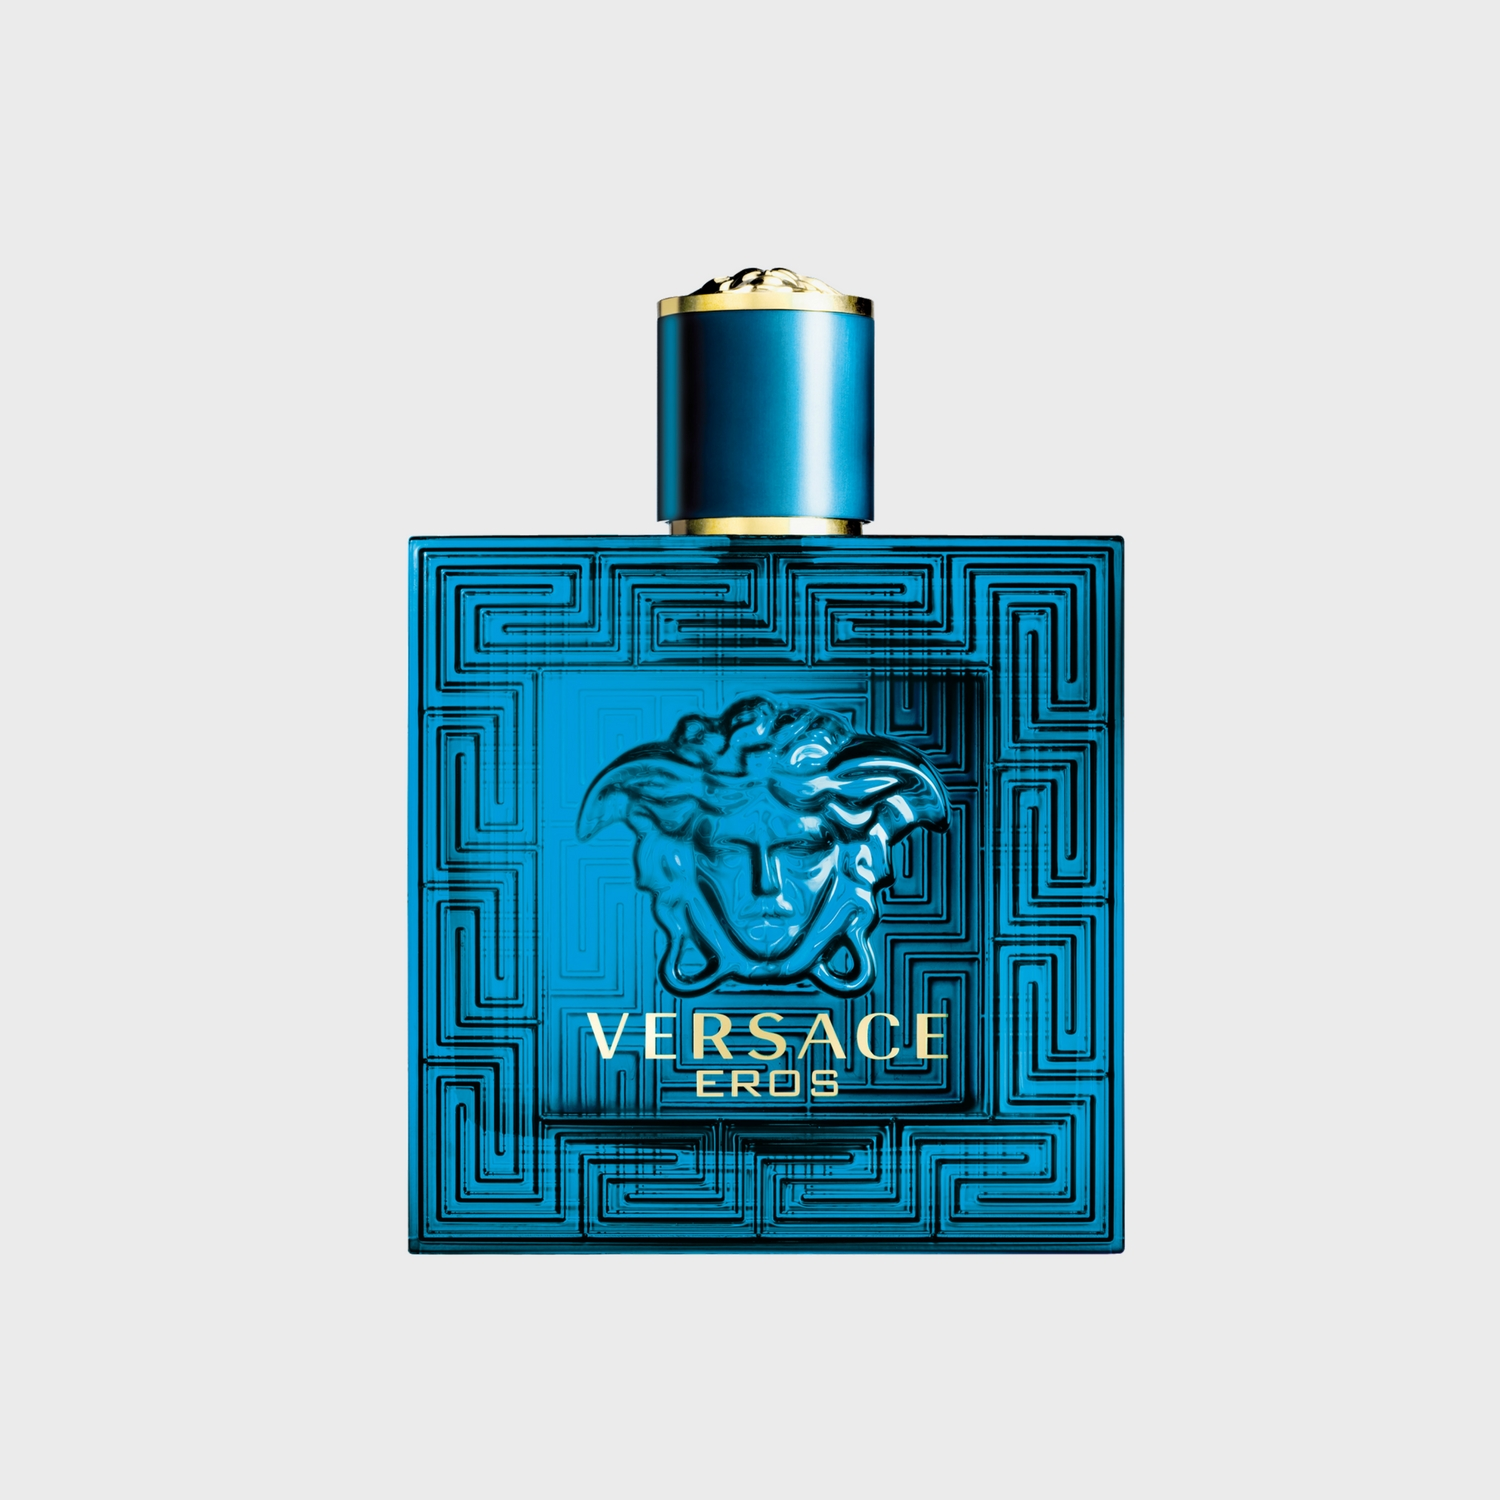 Versace Eros - Men's Fragrance Reviews